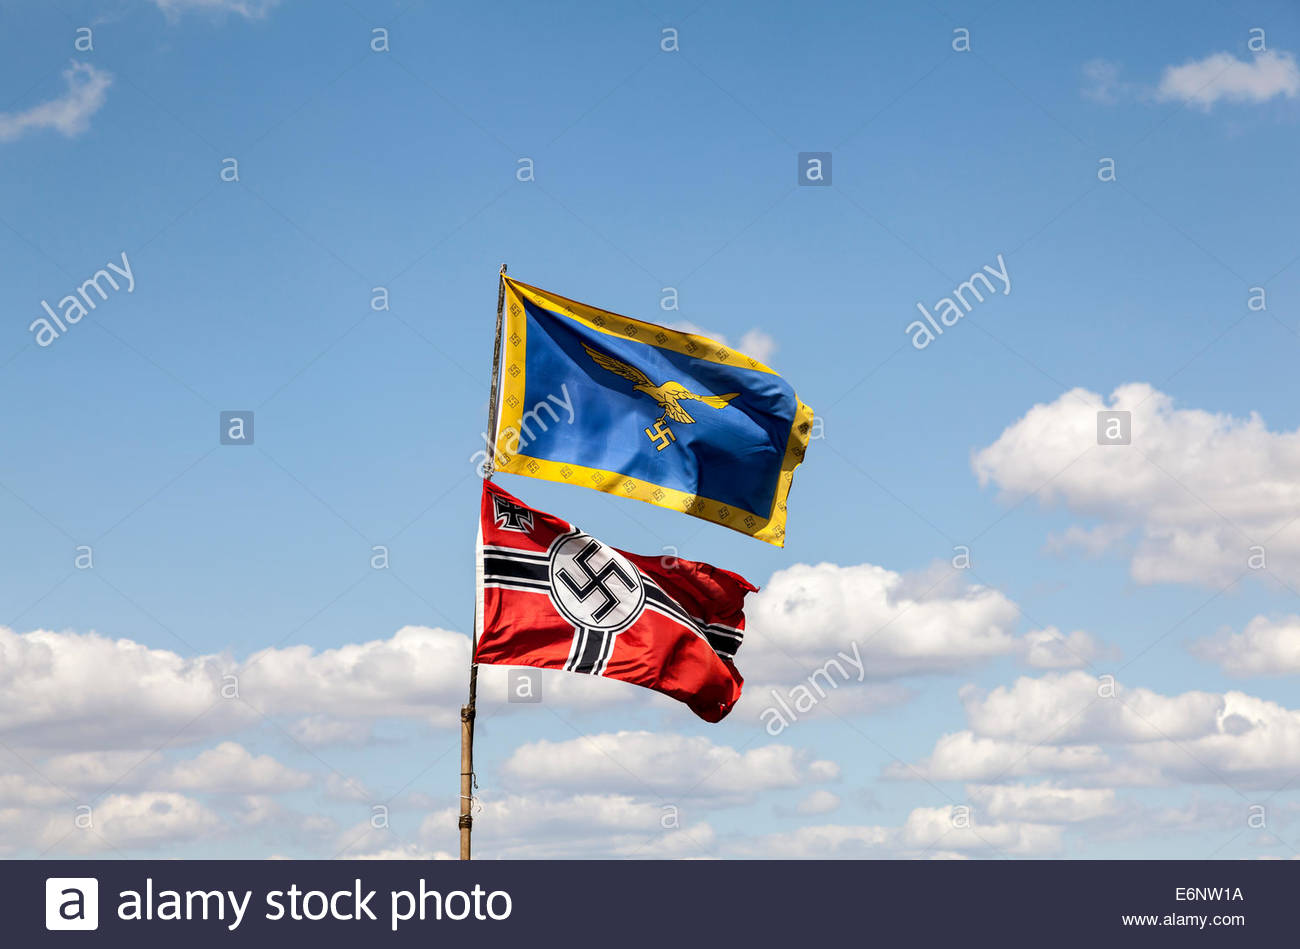 German World War Two Flags  Nazi Germany Battle Flag and